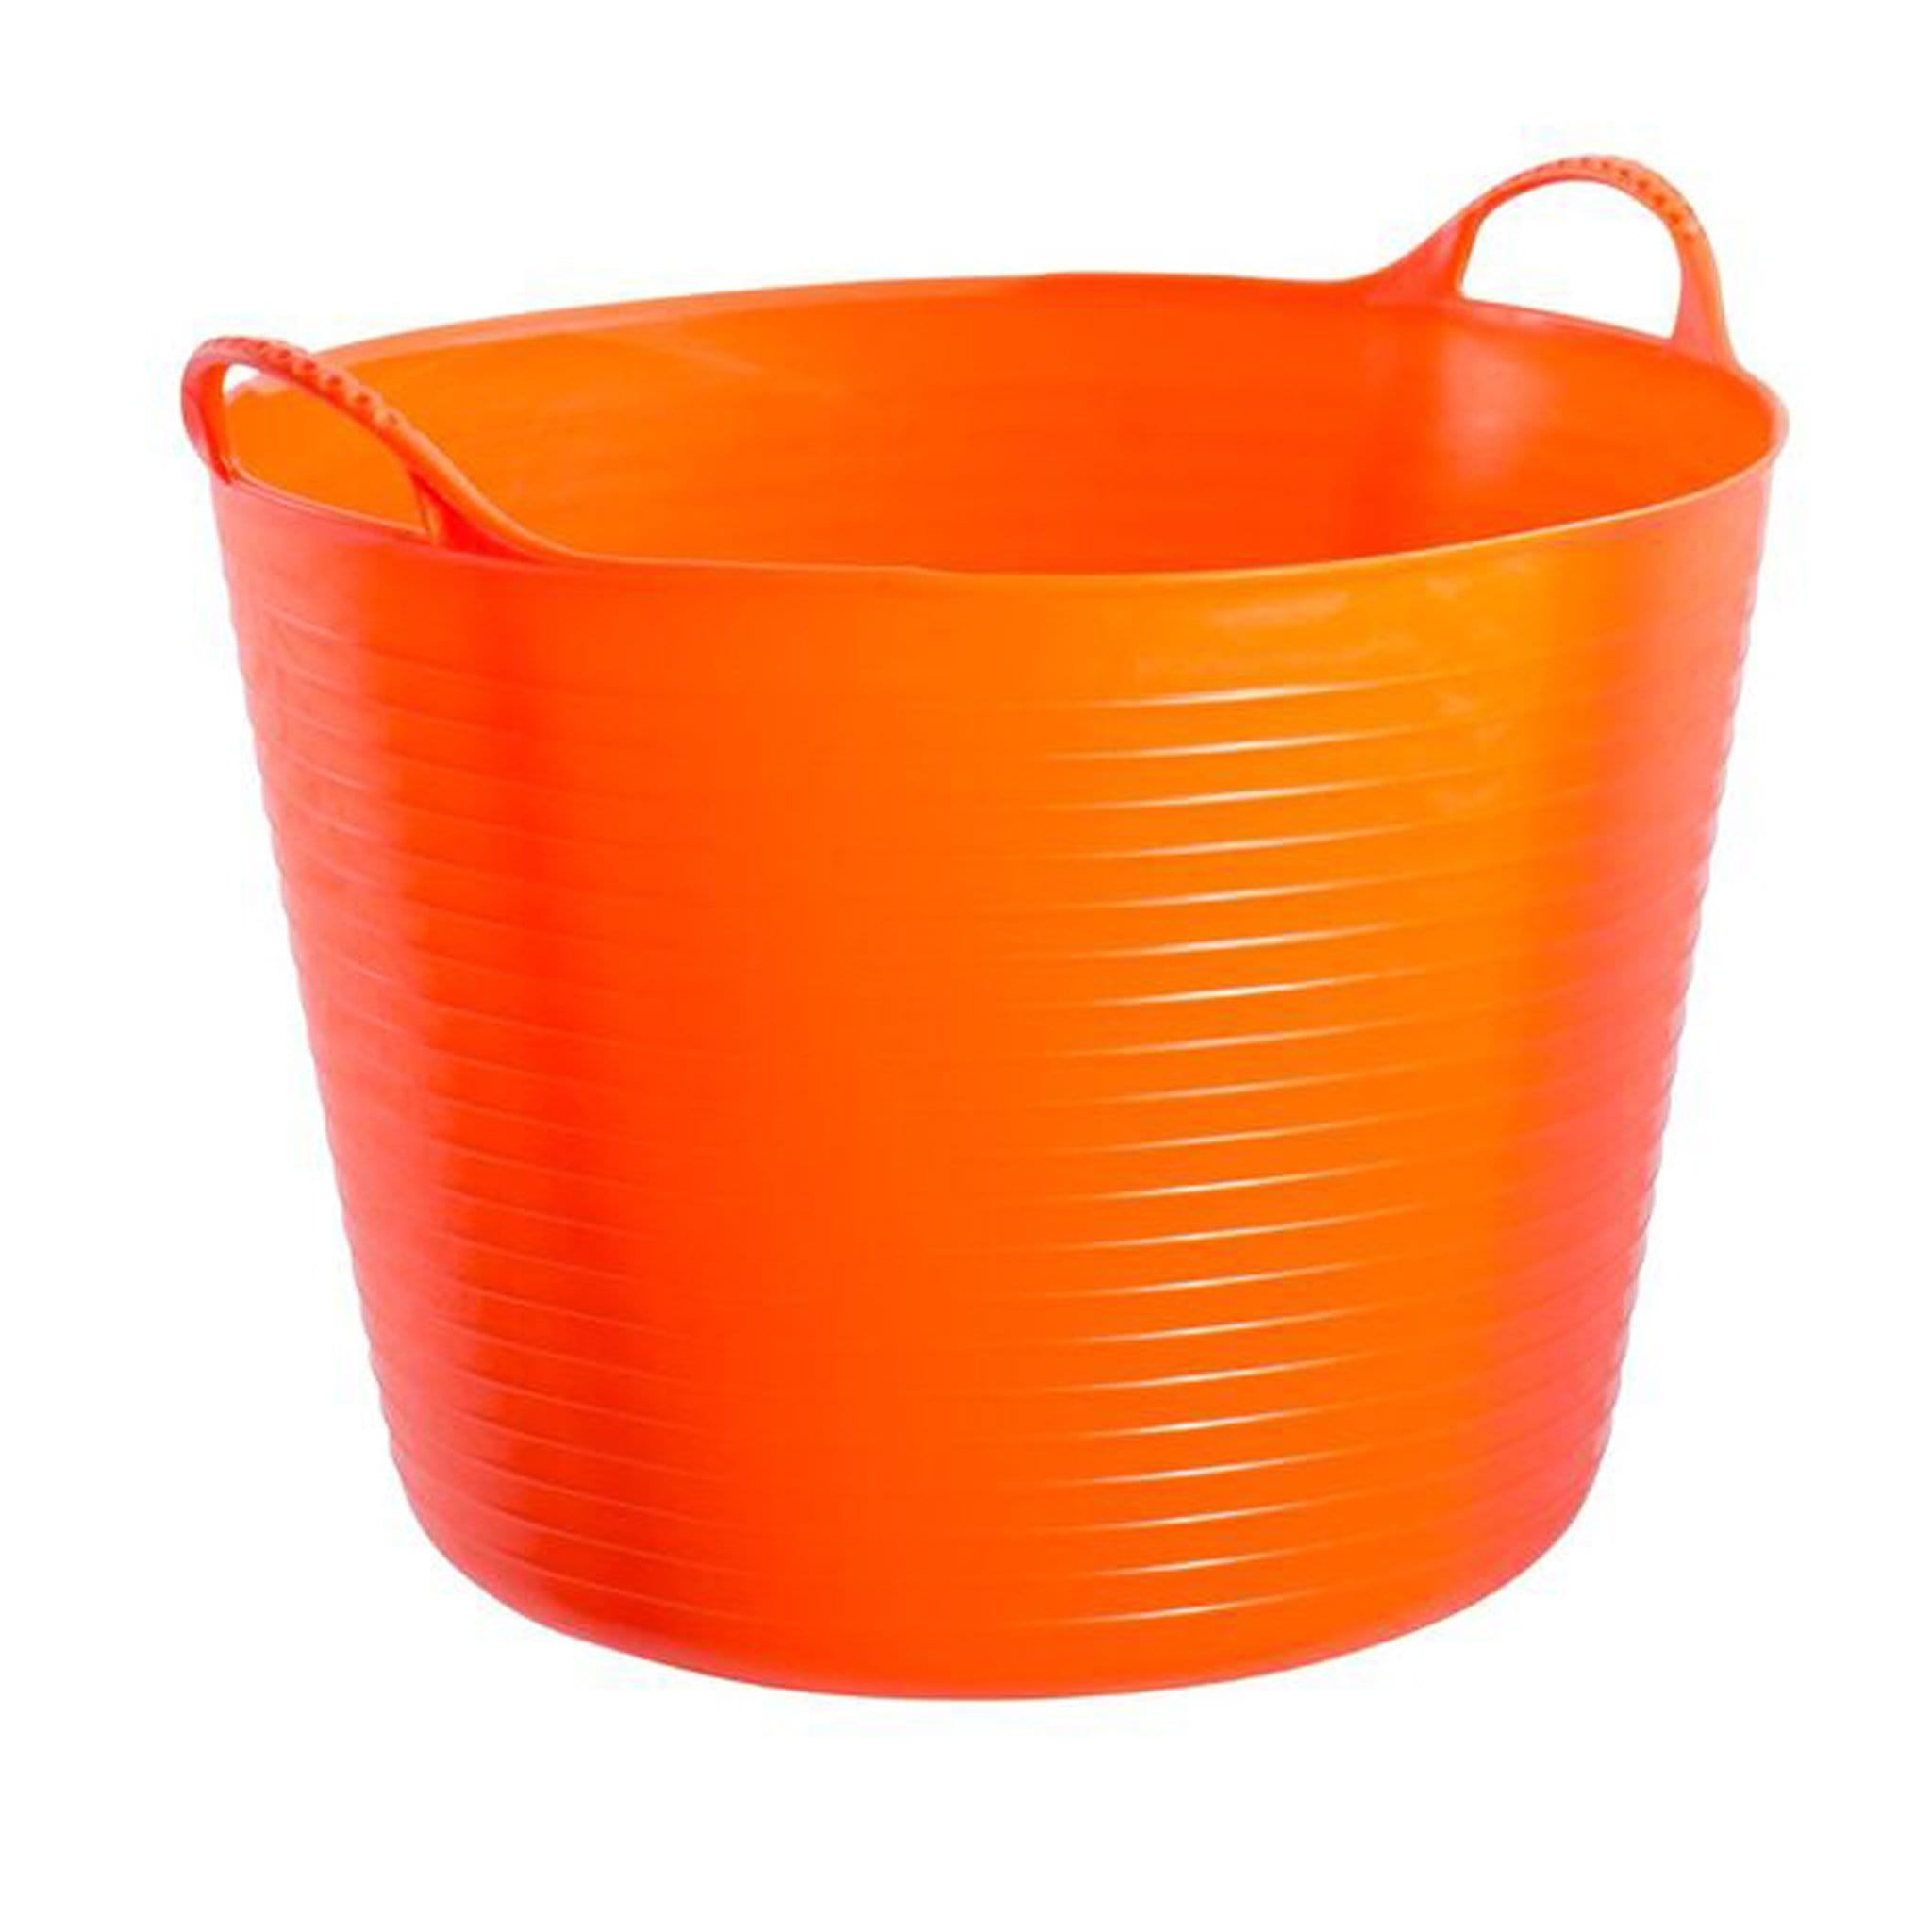 Red Gorilla TubTrug Large Flexible Bowl Orange KGR0072